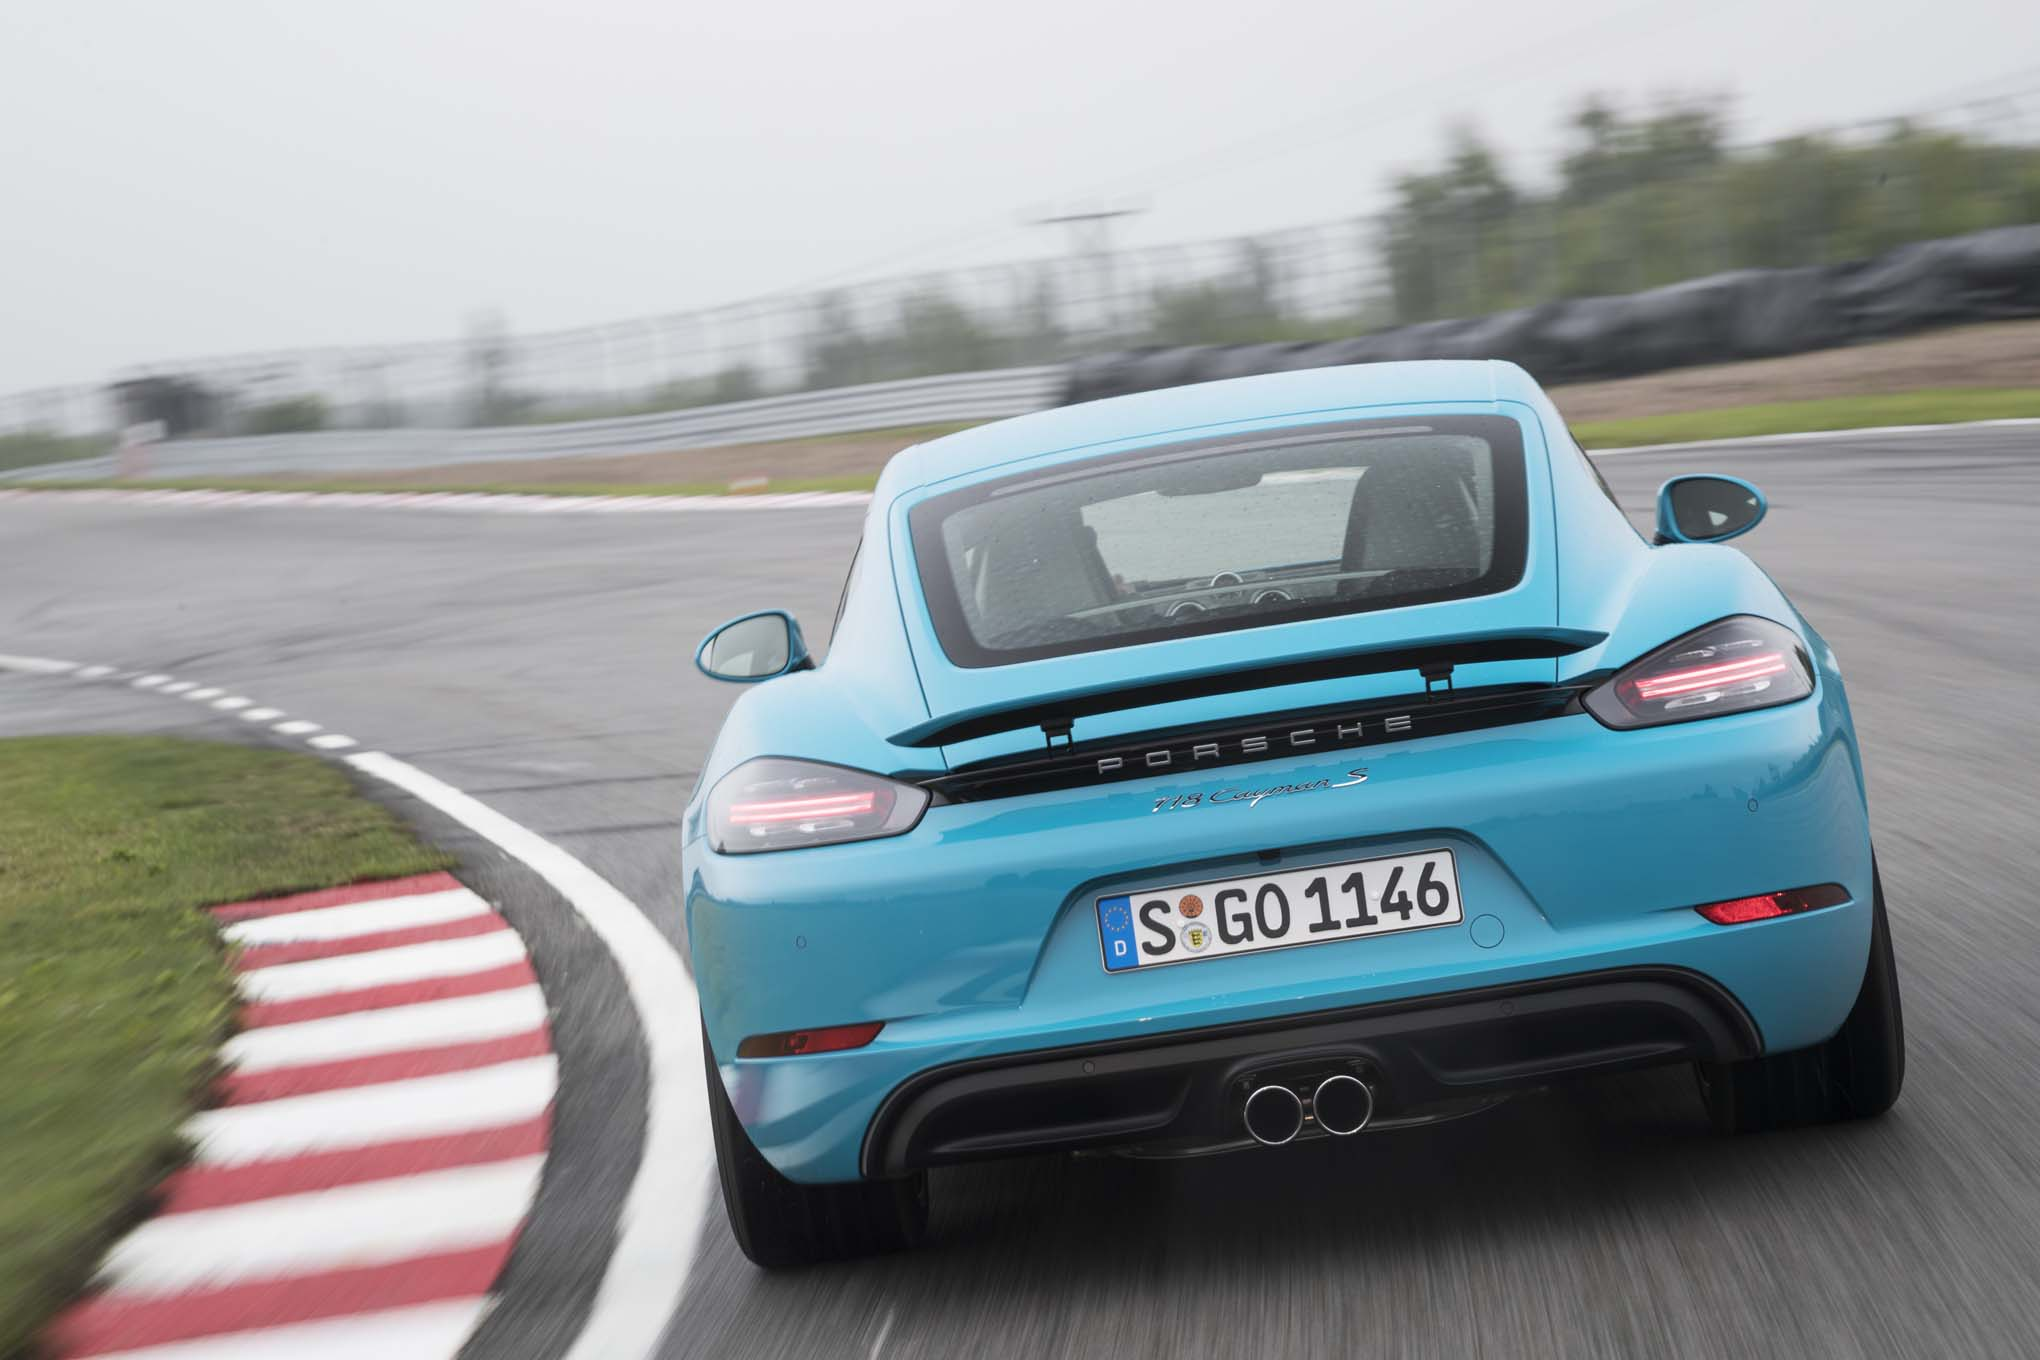 2017 Porsche 718 Cayman S rear end in motion